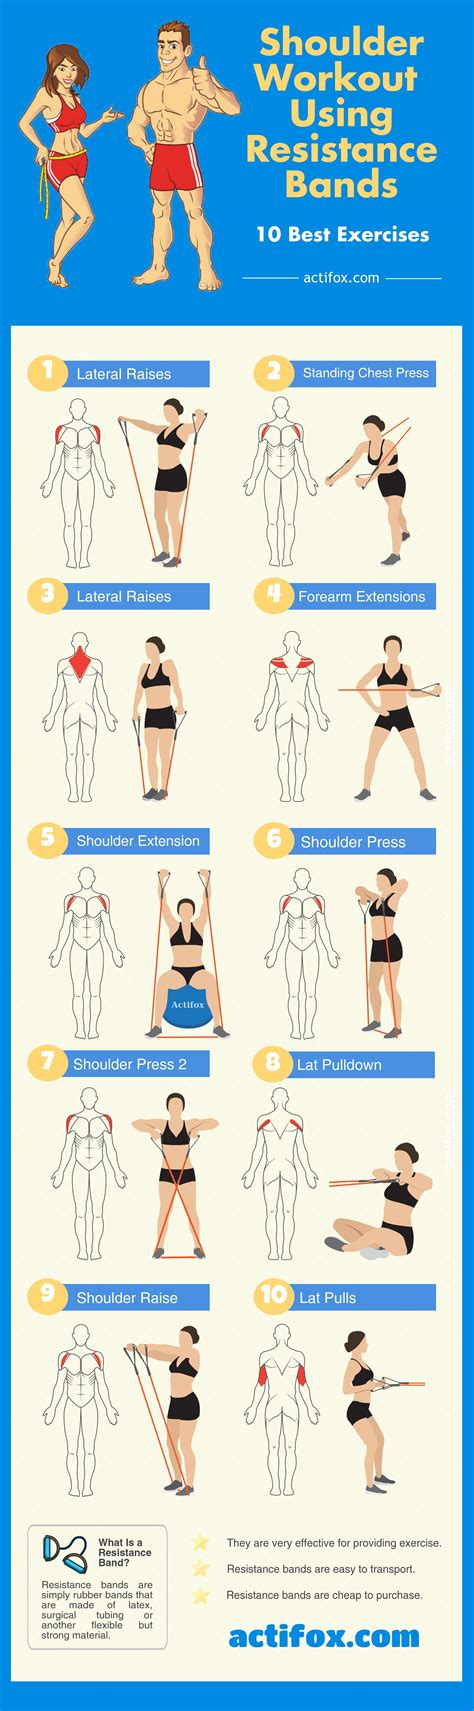 Exercise Resistance Band shoulder workout using resistance bands 10 best exercises